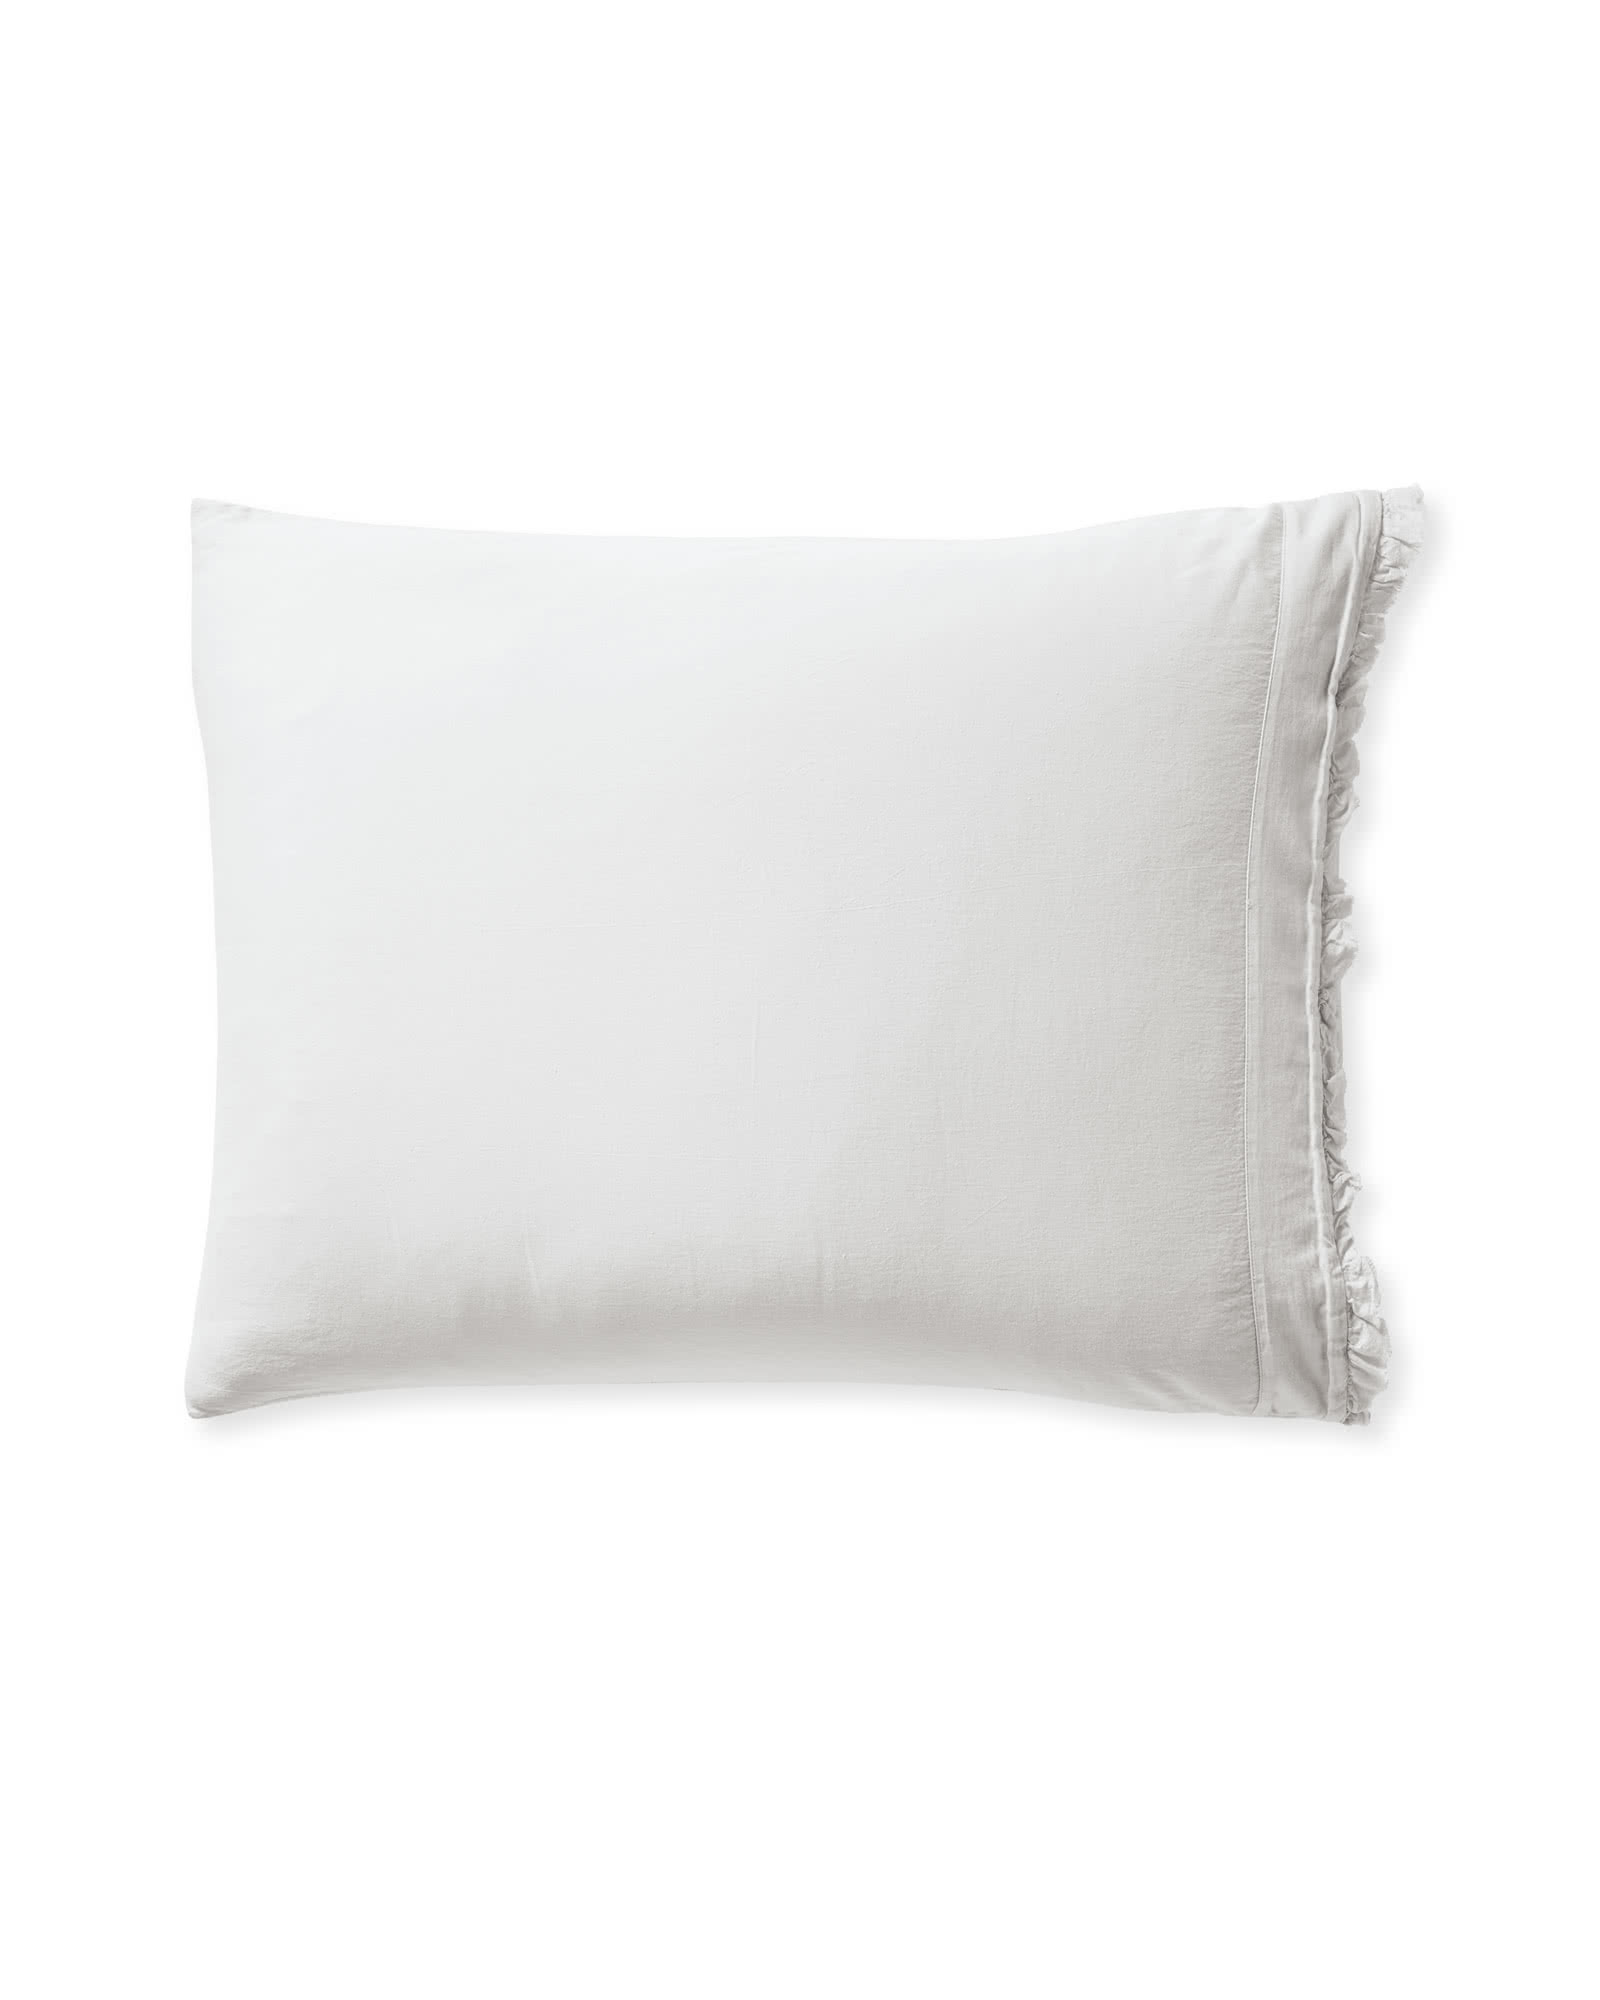 Oyster Bay Pillowcases (Extra Set of 2) - Fog,